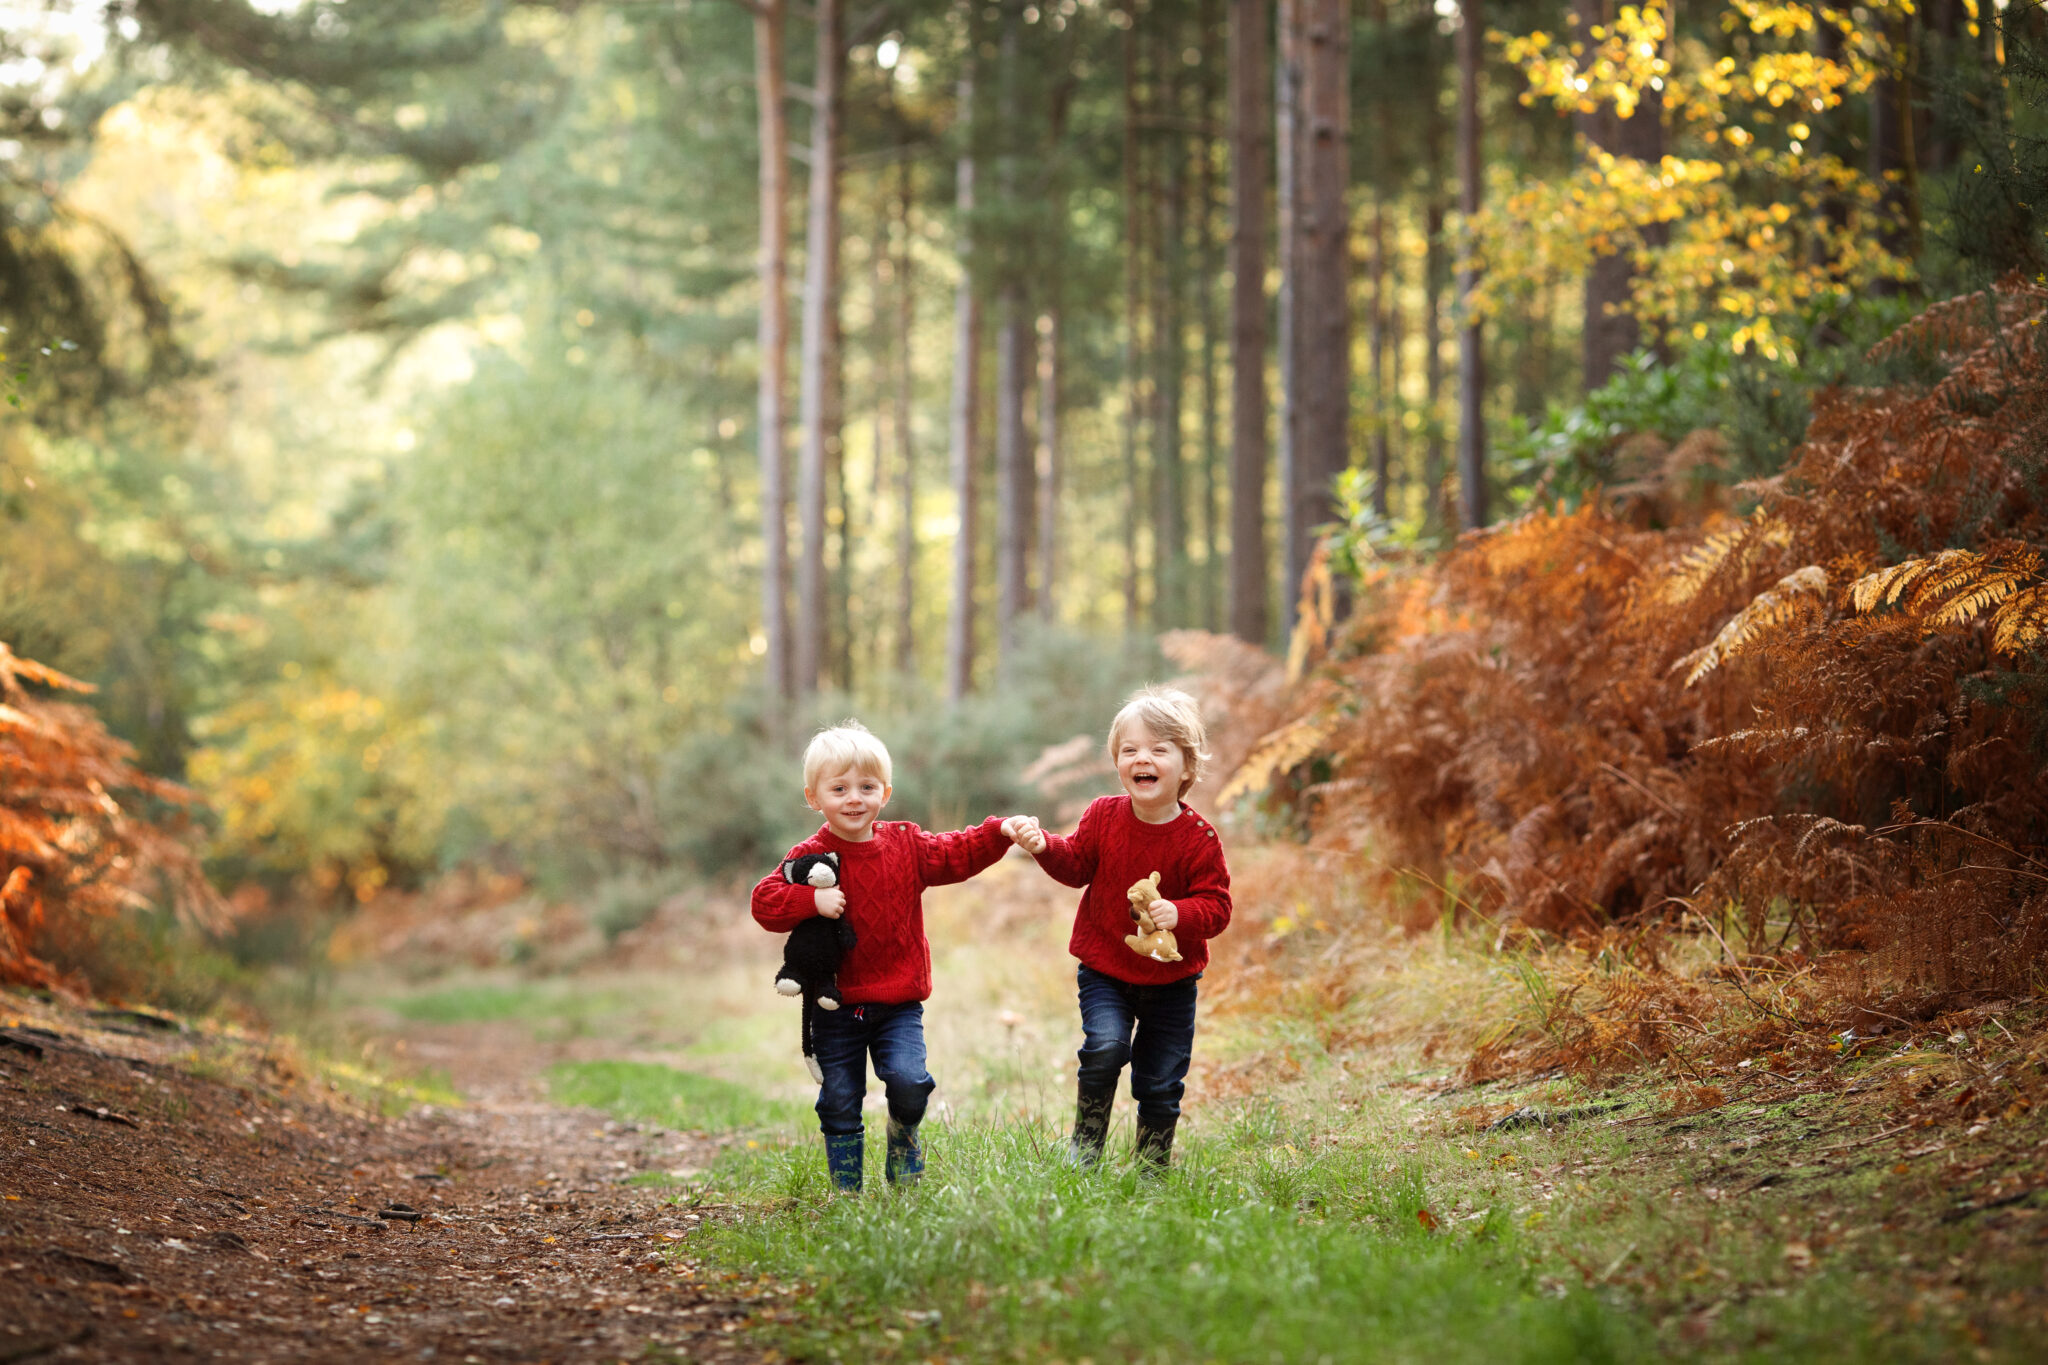 Autumn Photography near me, Photographer Fleet Hampshire, Baby Photographer Fleet Hampshire, Childrens Photographer Fleet Hampshire, Photographer Surrey, Photographer Hampshire, Family photographer Hampshire, Family photographer Surrey, Baby photographer Hampshire, Baby Photographer Surrey